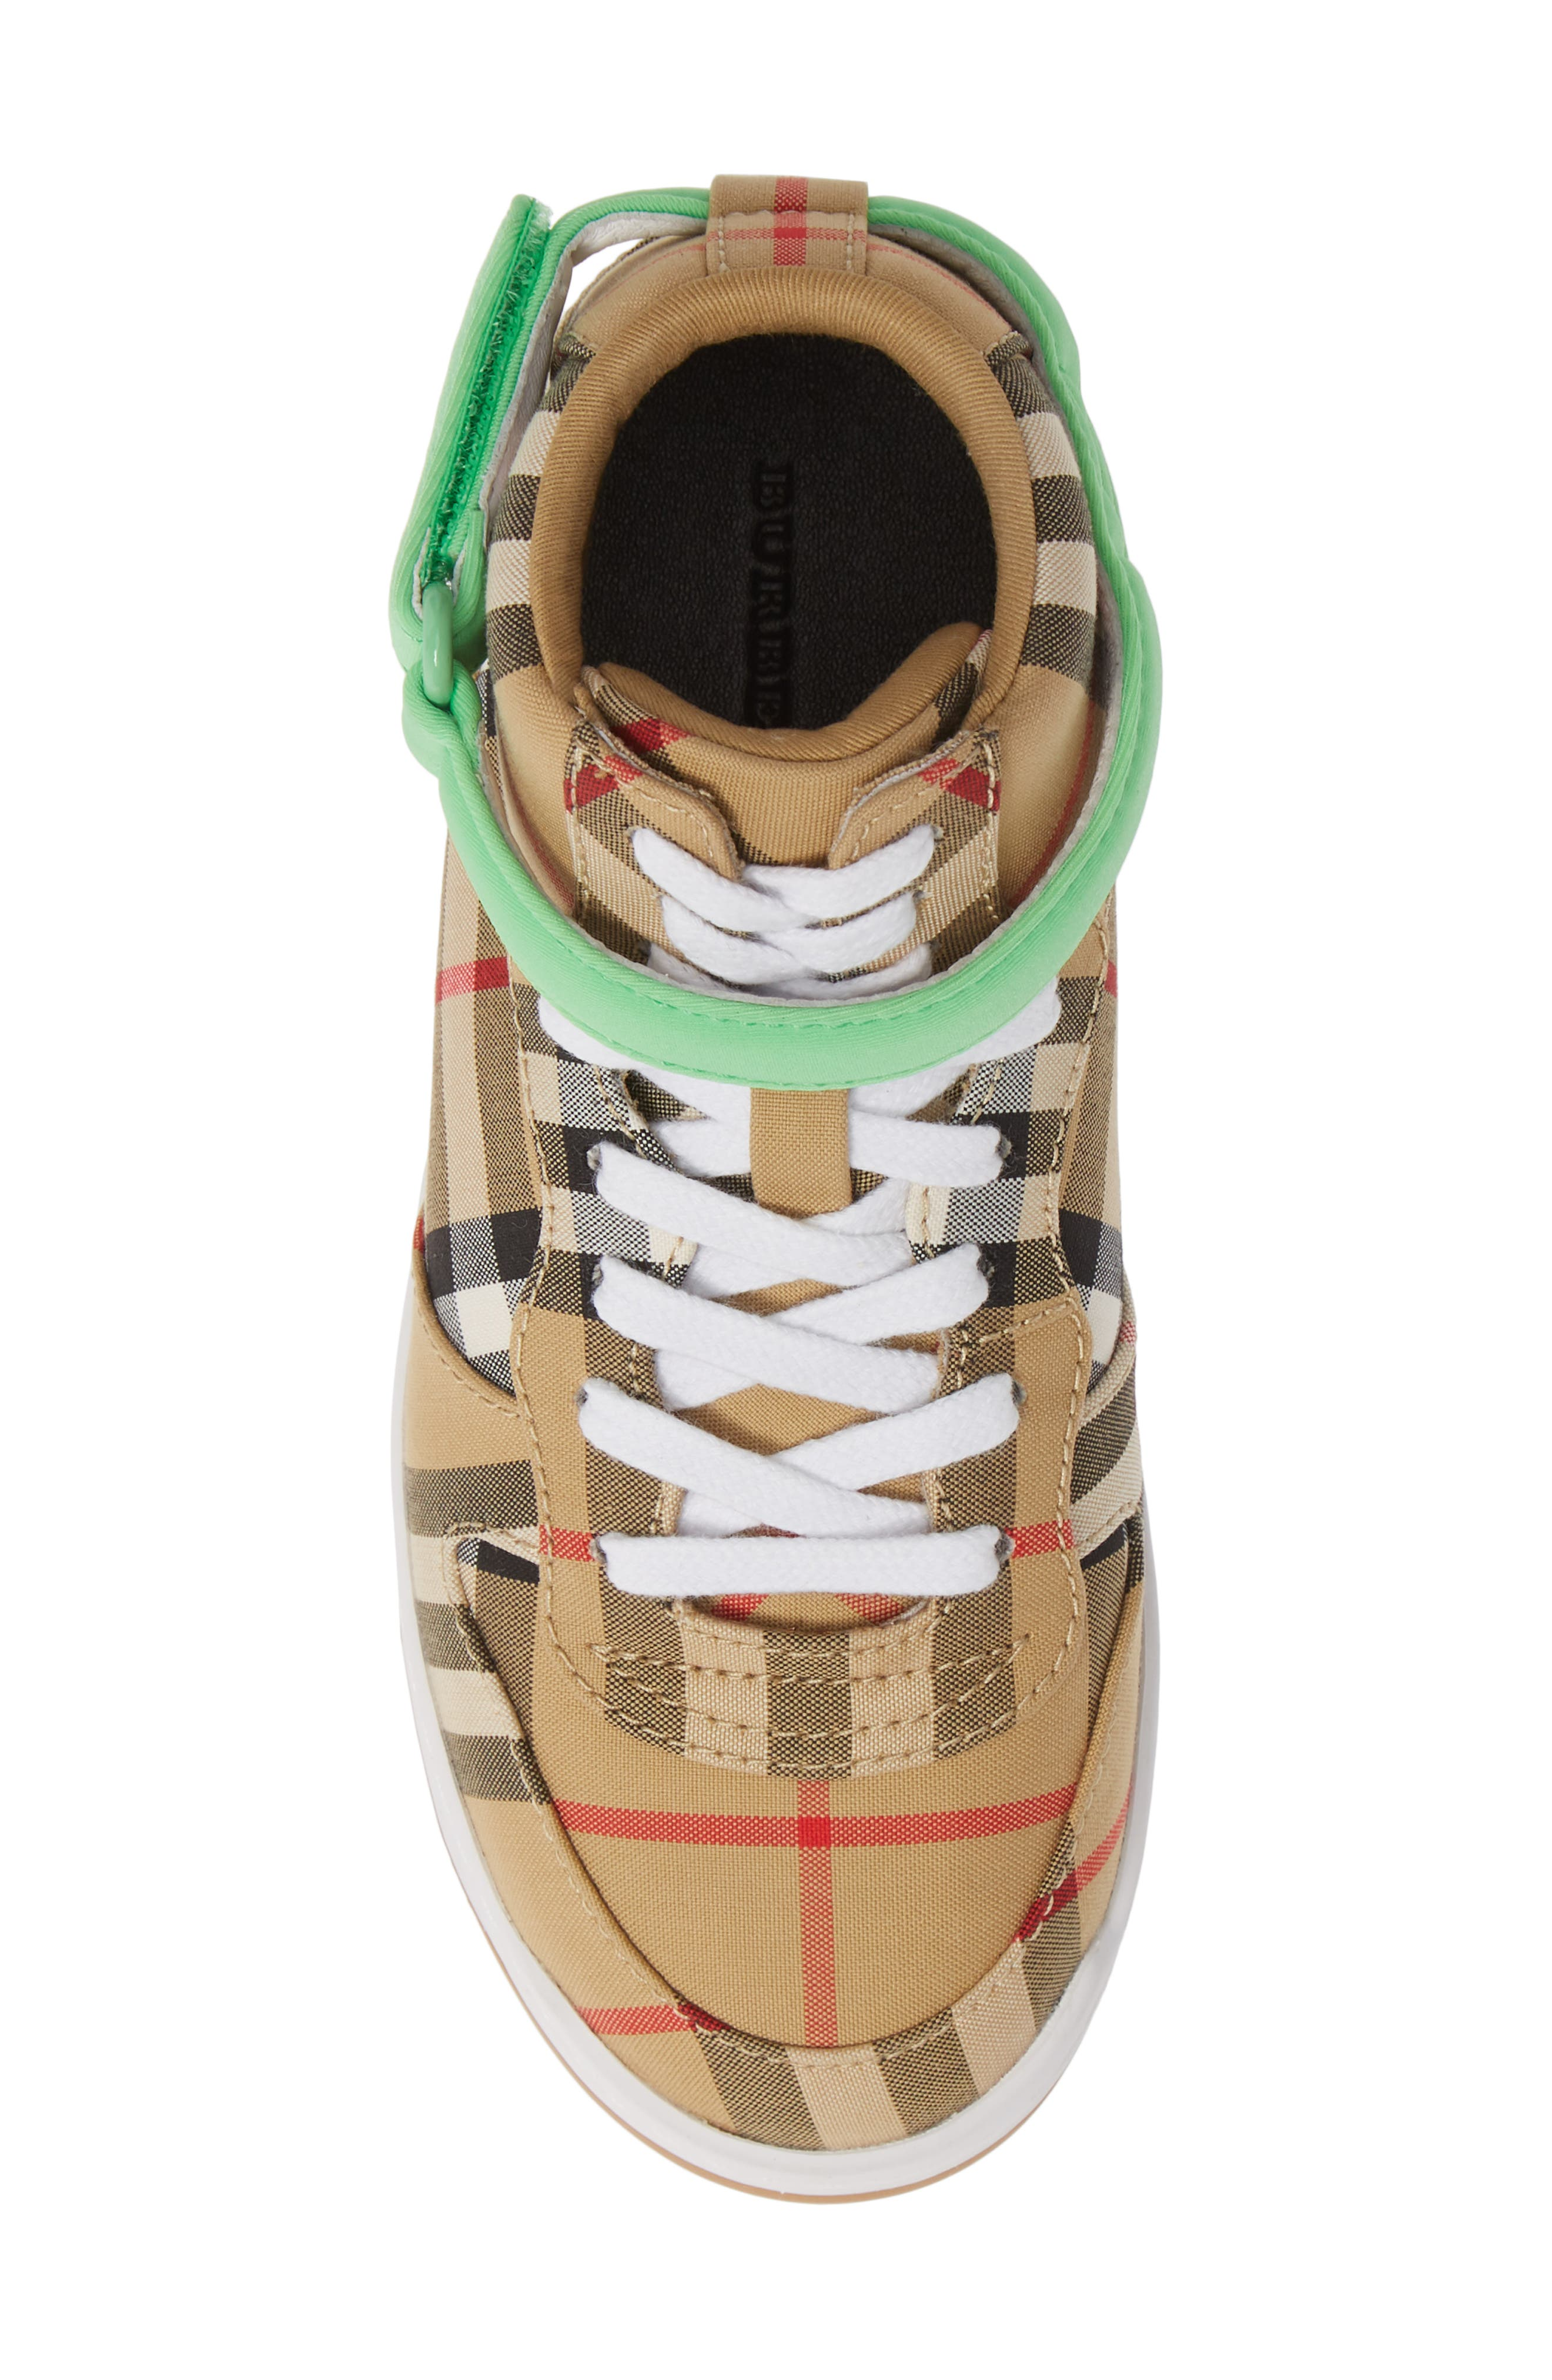 Groves High Top Sneaker,                             Alternate thumbnail 5, color,                             NEON GREEN